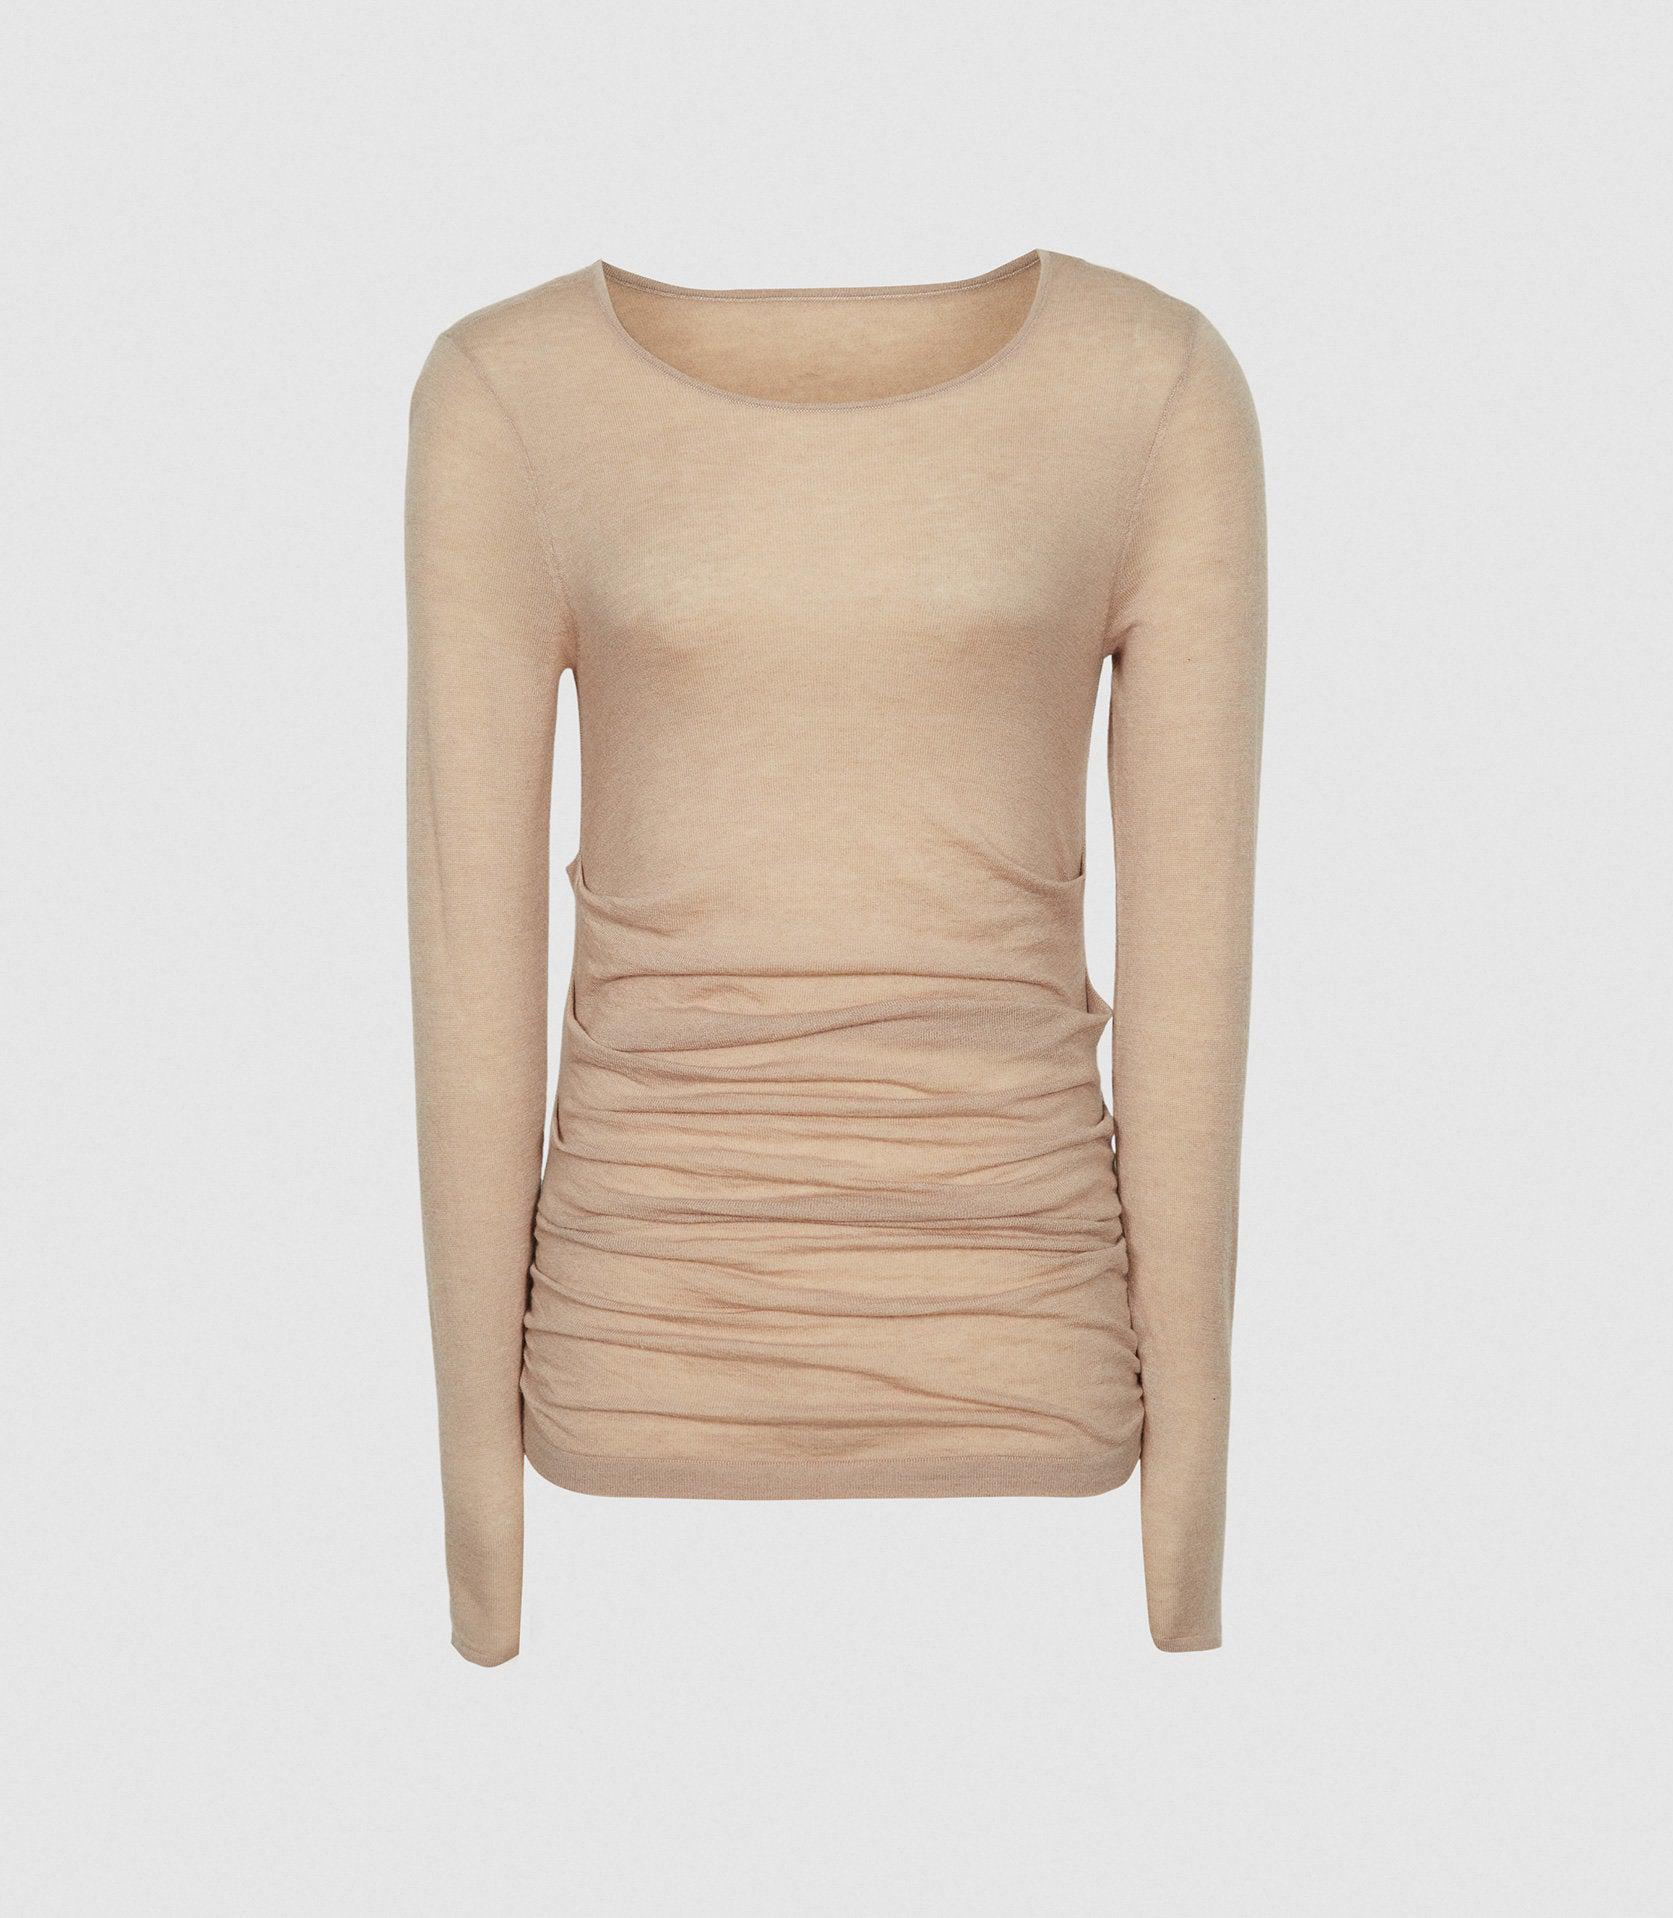 MARGOT - WOOL CASHMERE BLEND RUCHED TOP 5